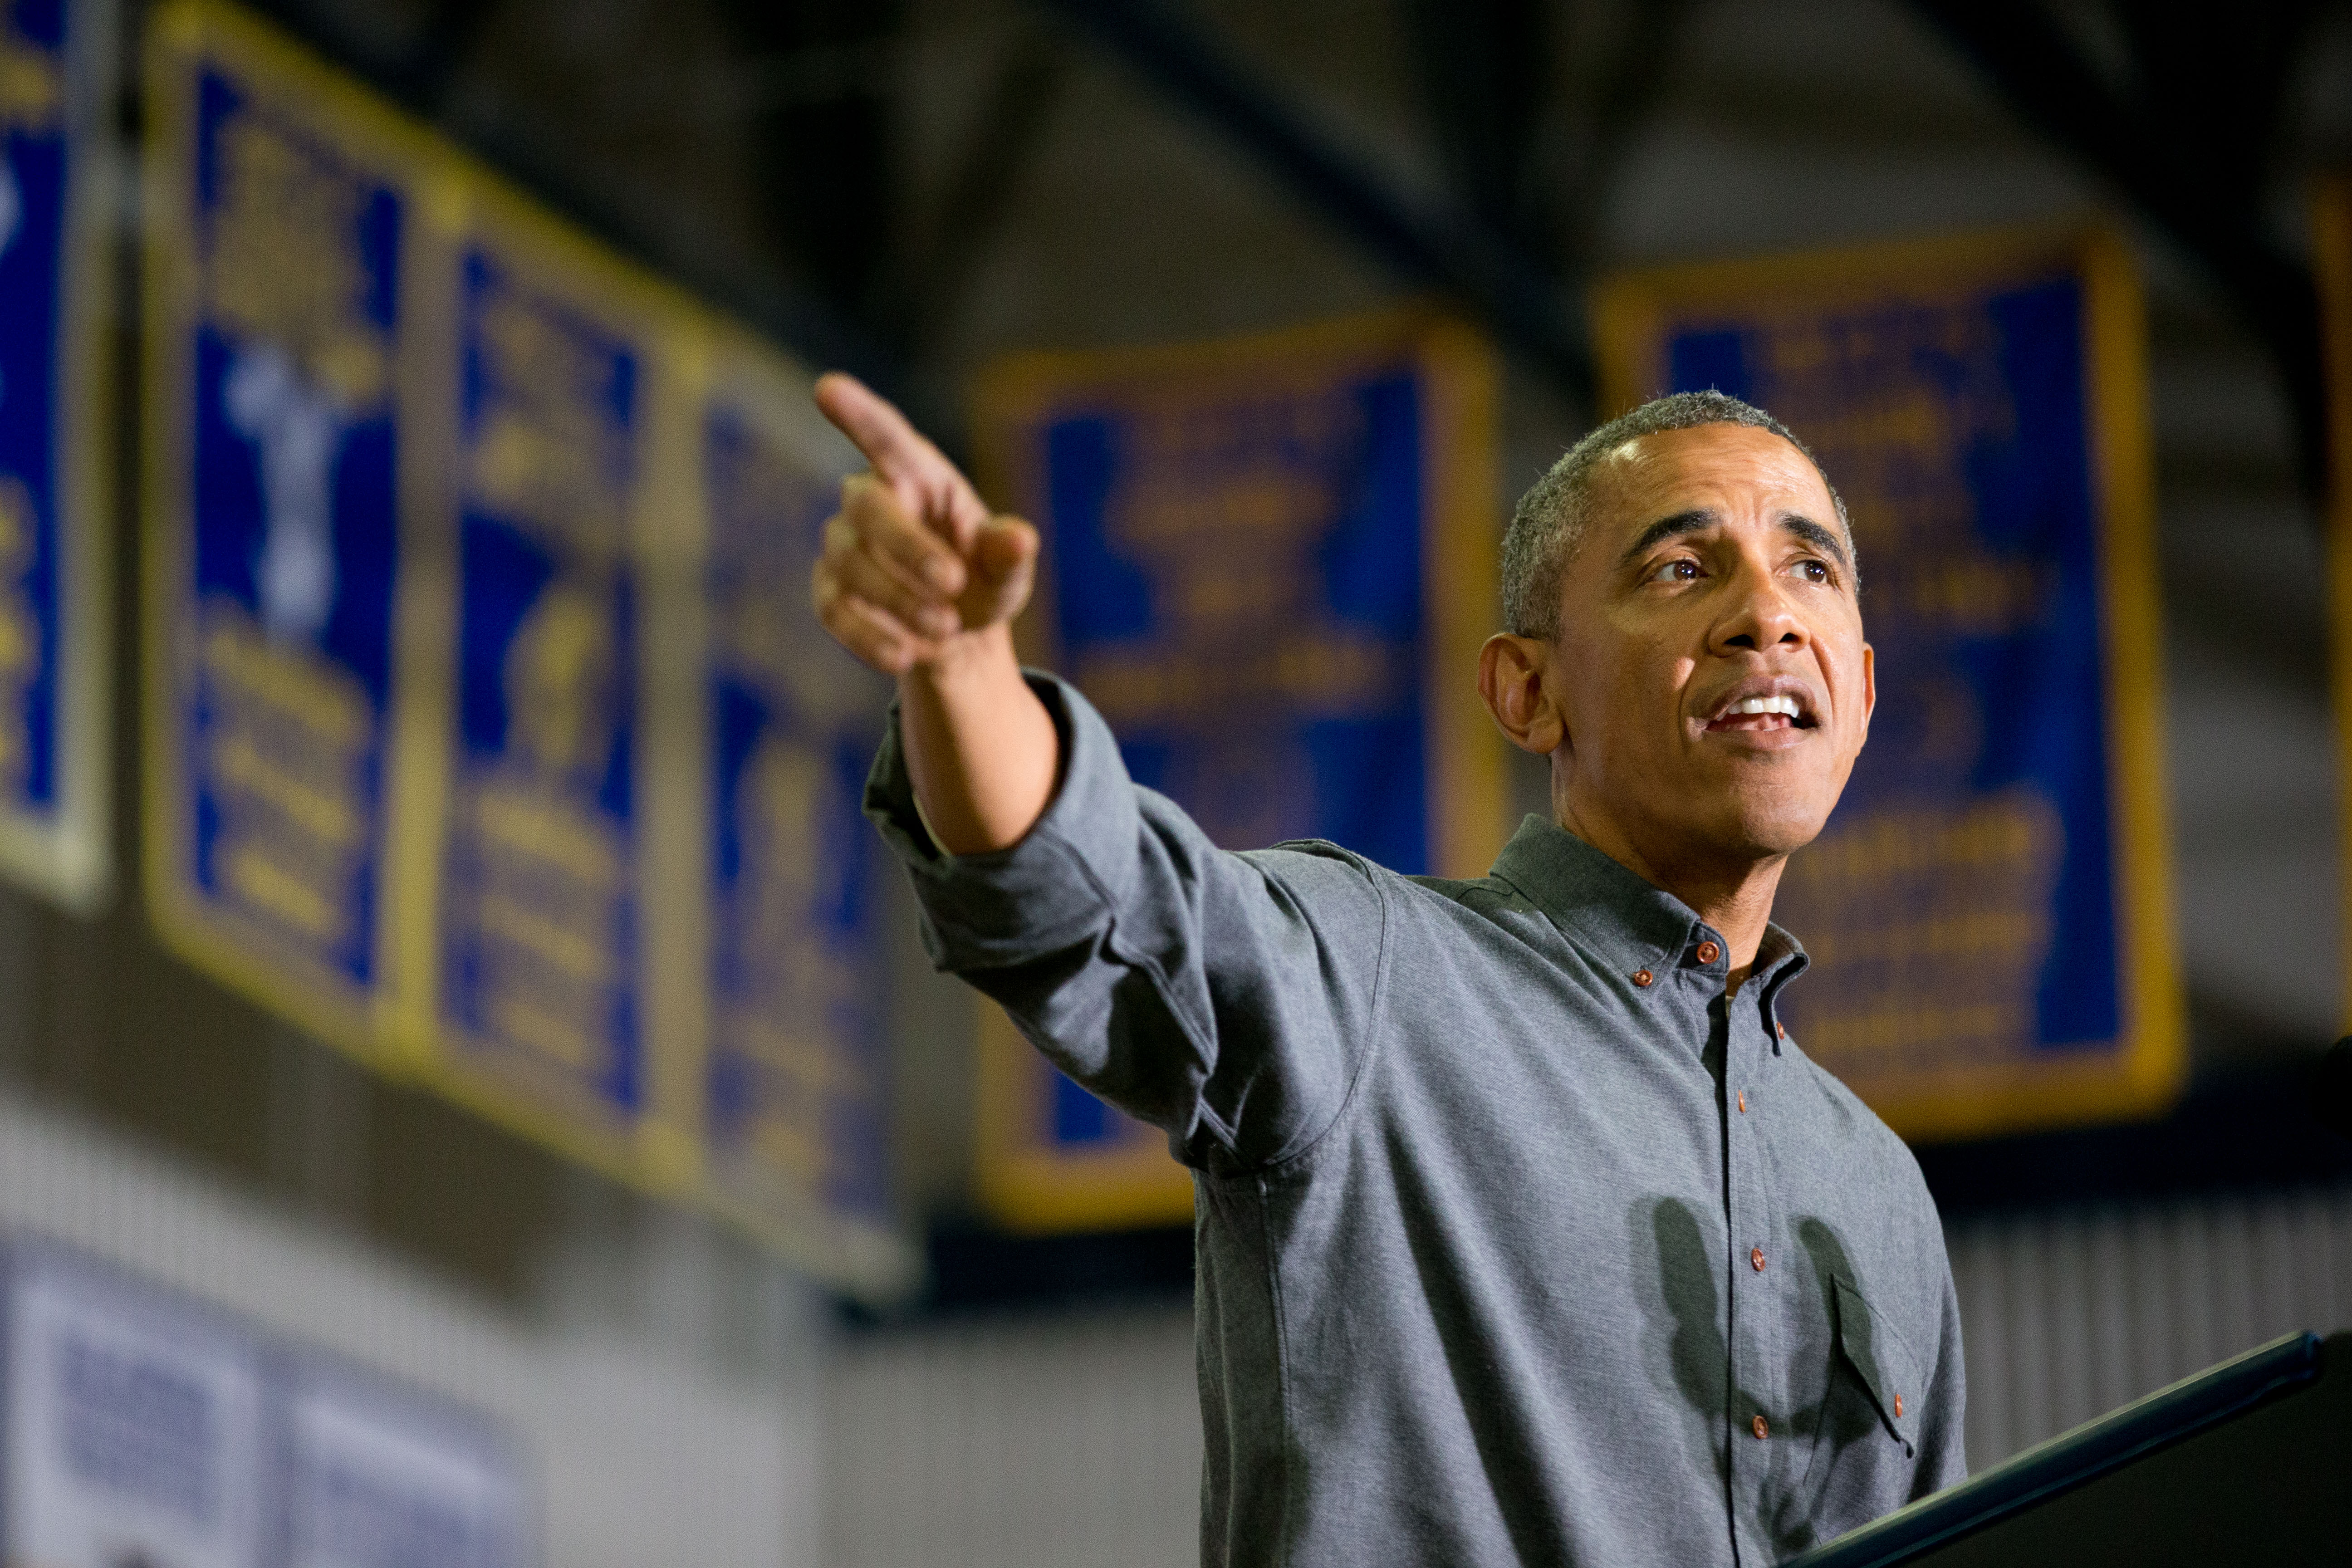 President Barack Obama delivers remarks at Kotzebue School, Wednesday, Sept. 2, 2015, in Kotzebue, Alaska. Obama is on a historic three-day trip to Alaska aimed at showing solidarity with a state often overlooked by Washington, while using its glorious but changing landscape as an urgent call to action on climate change. (AP Photo/Andrew Harnik)